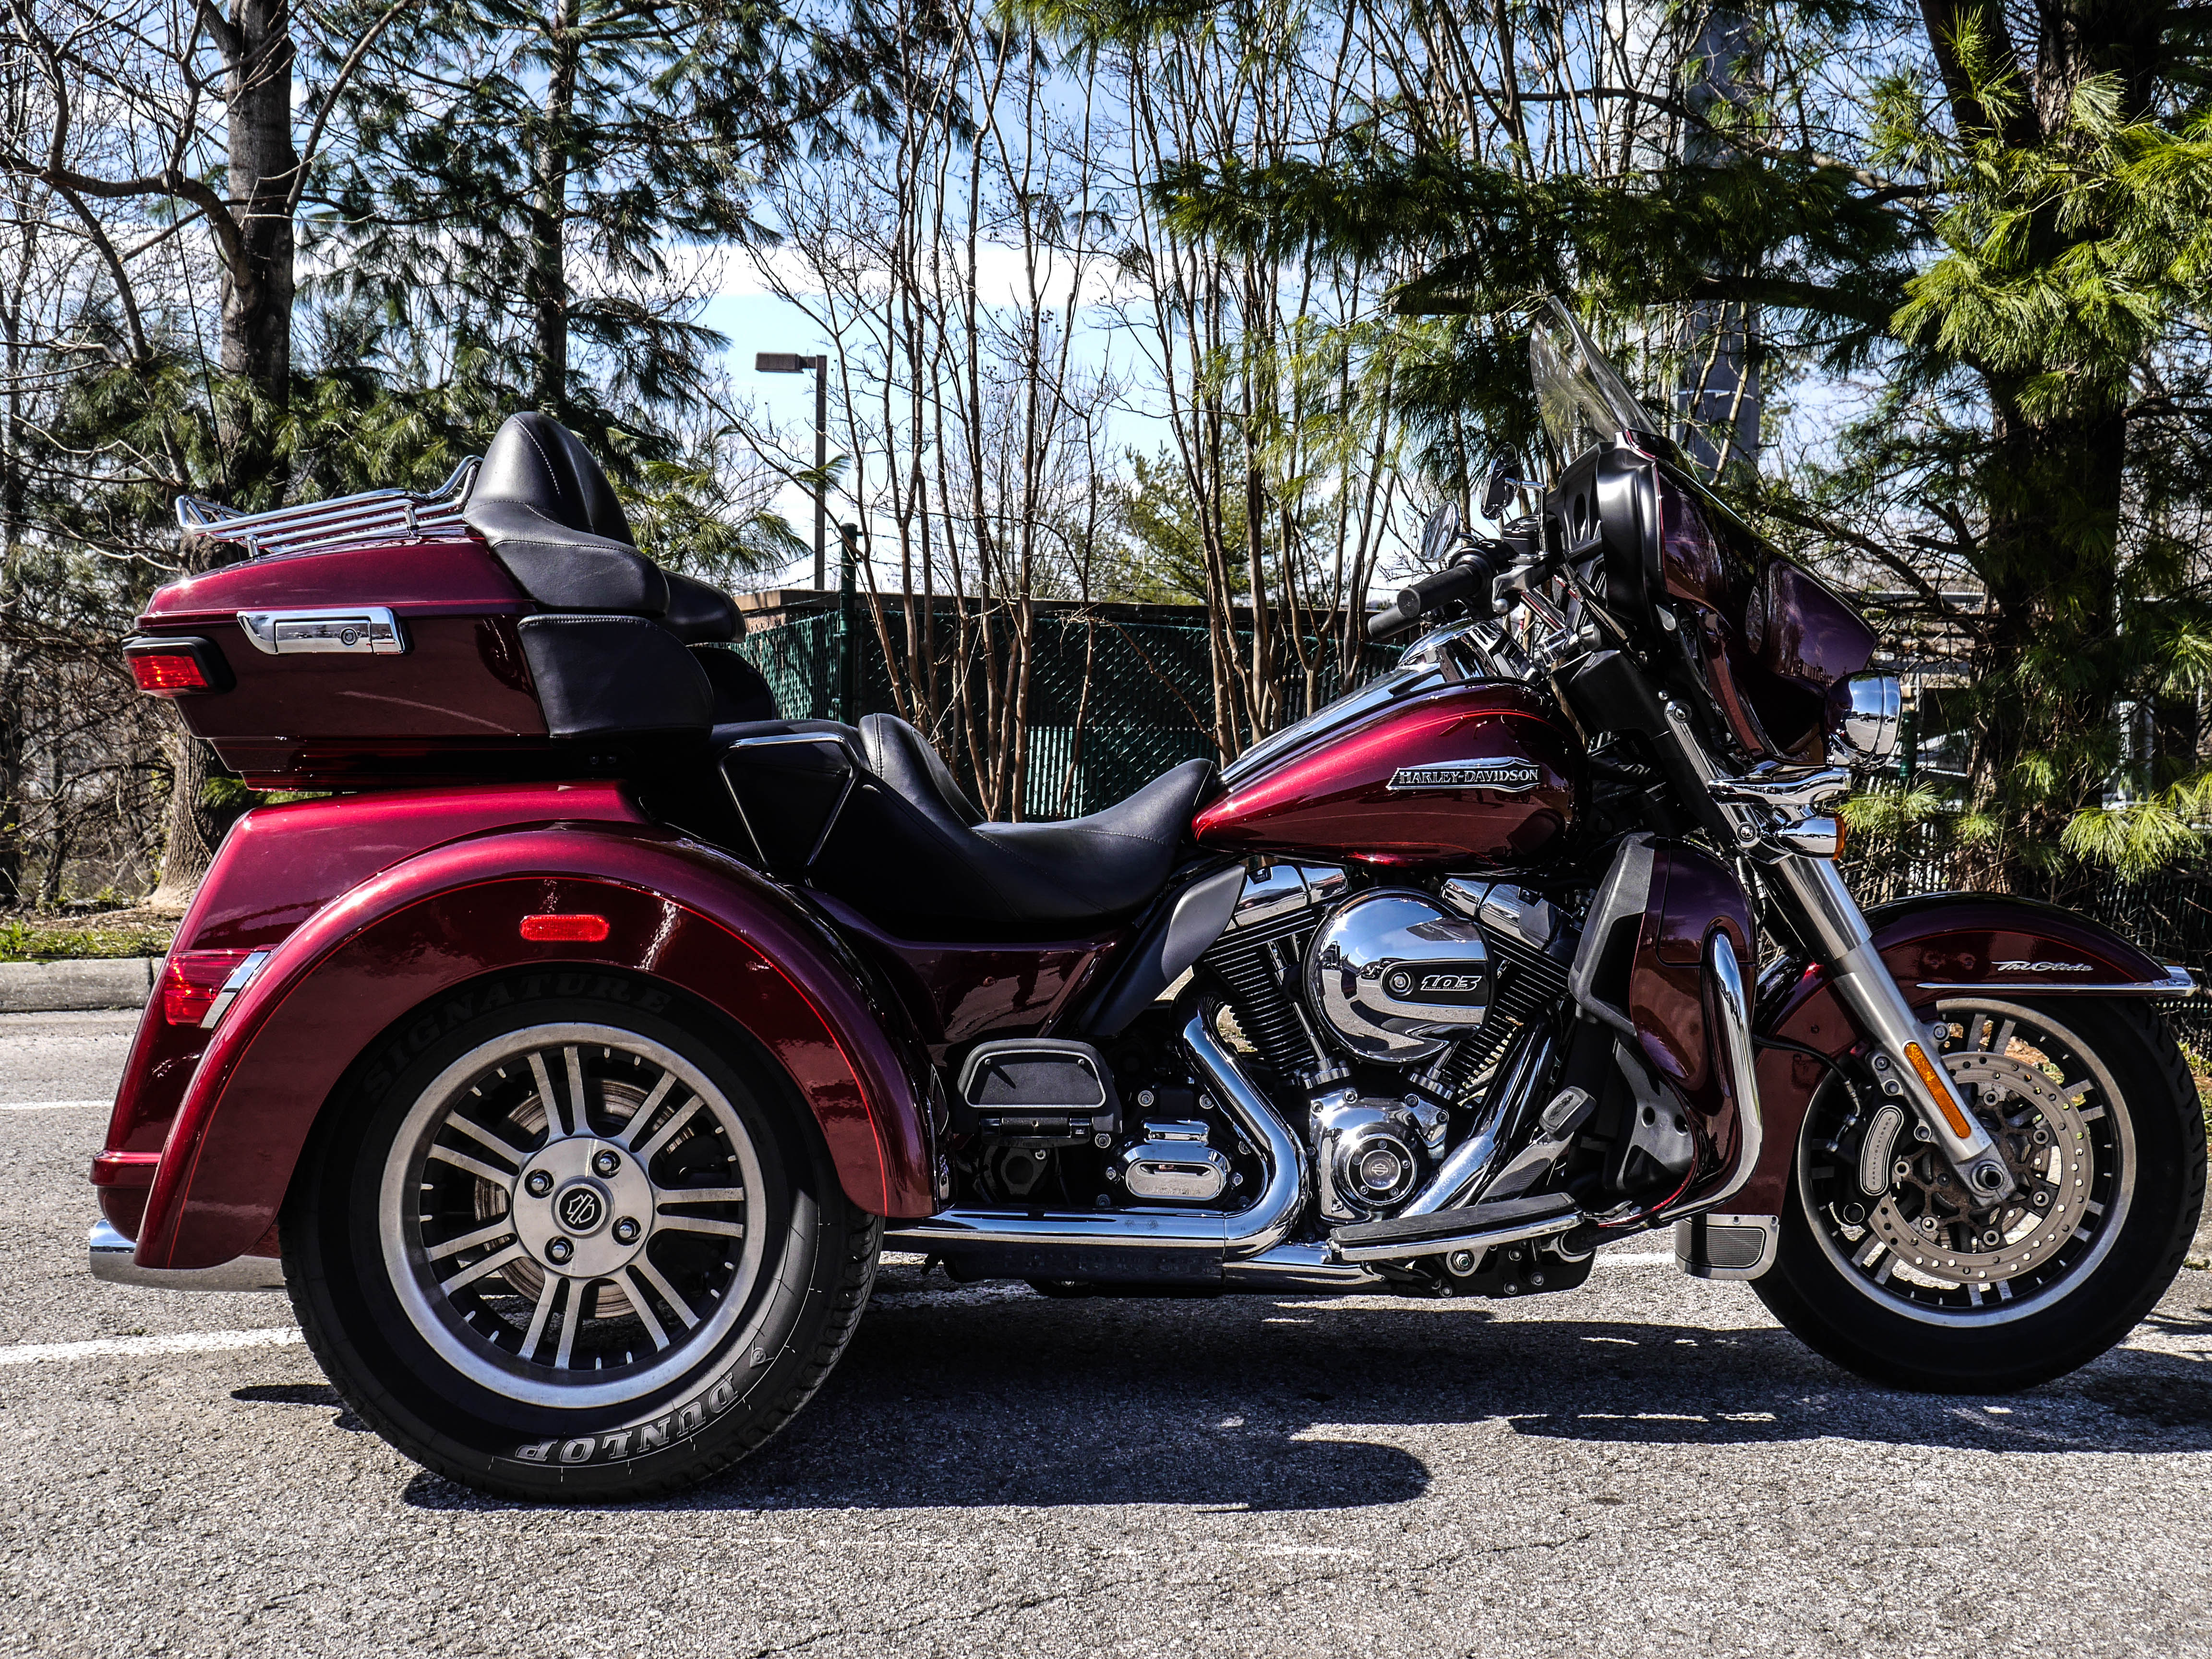 Pre-Owned 2015 Harley-Davidson Touring Tri Glide Ultra Classic